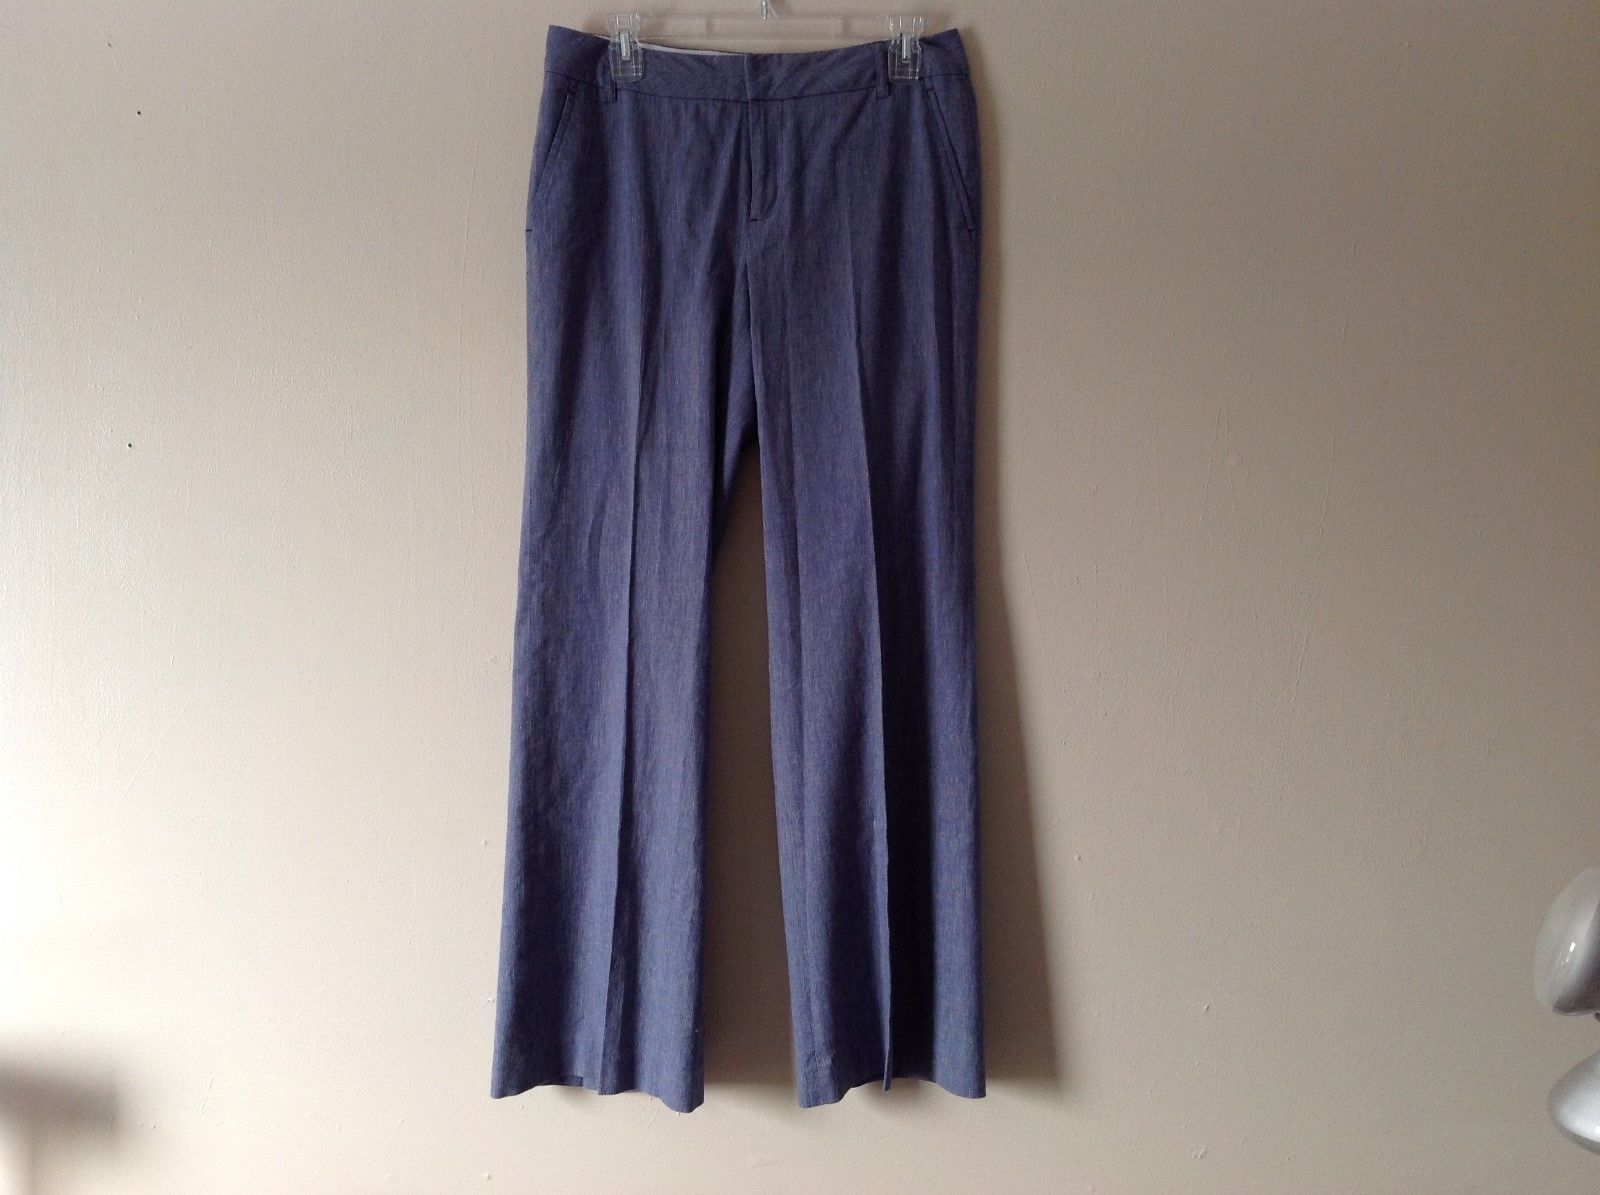 Women's Banana Republic light denim colored dress pants